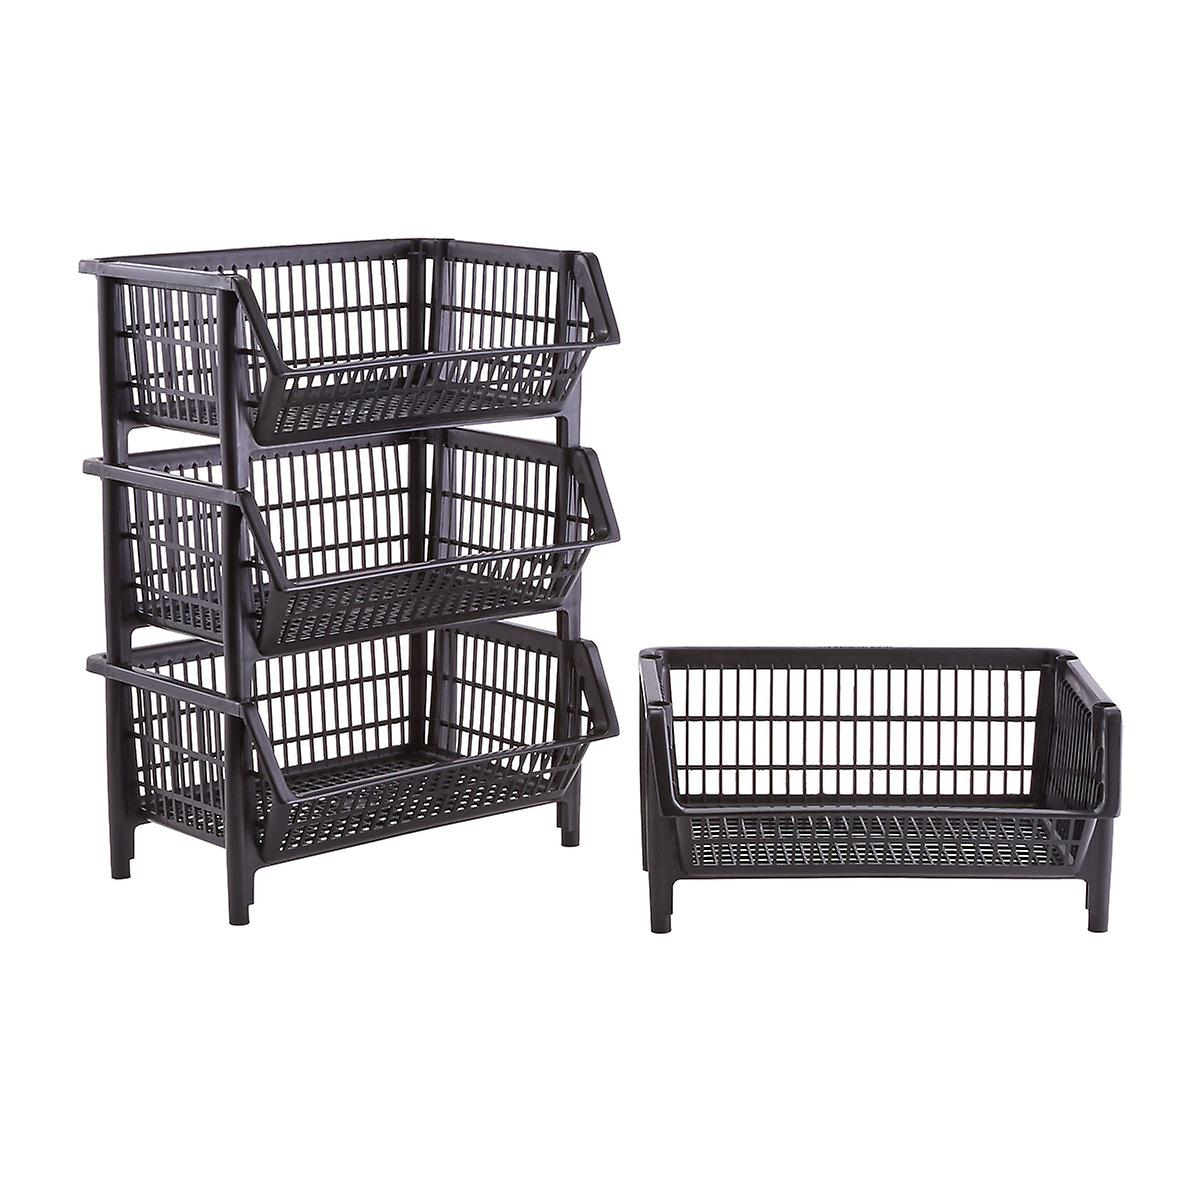 Our Black Stackable Baskets Case of 4